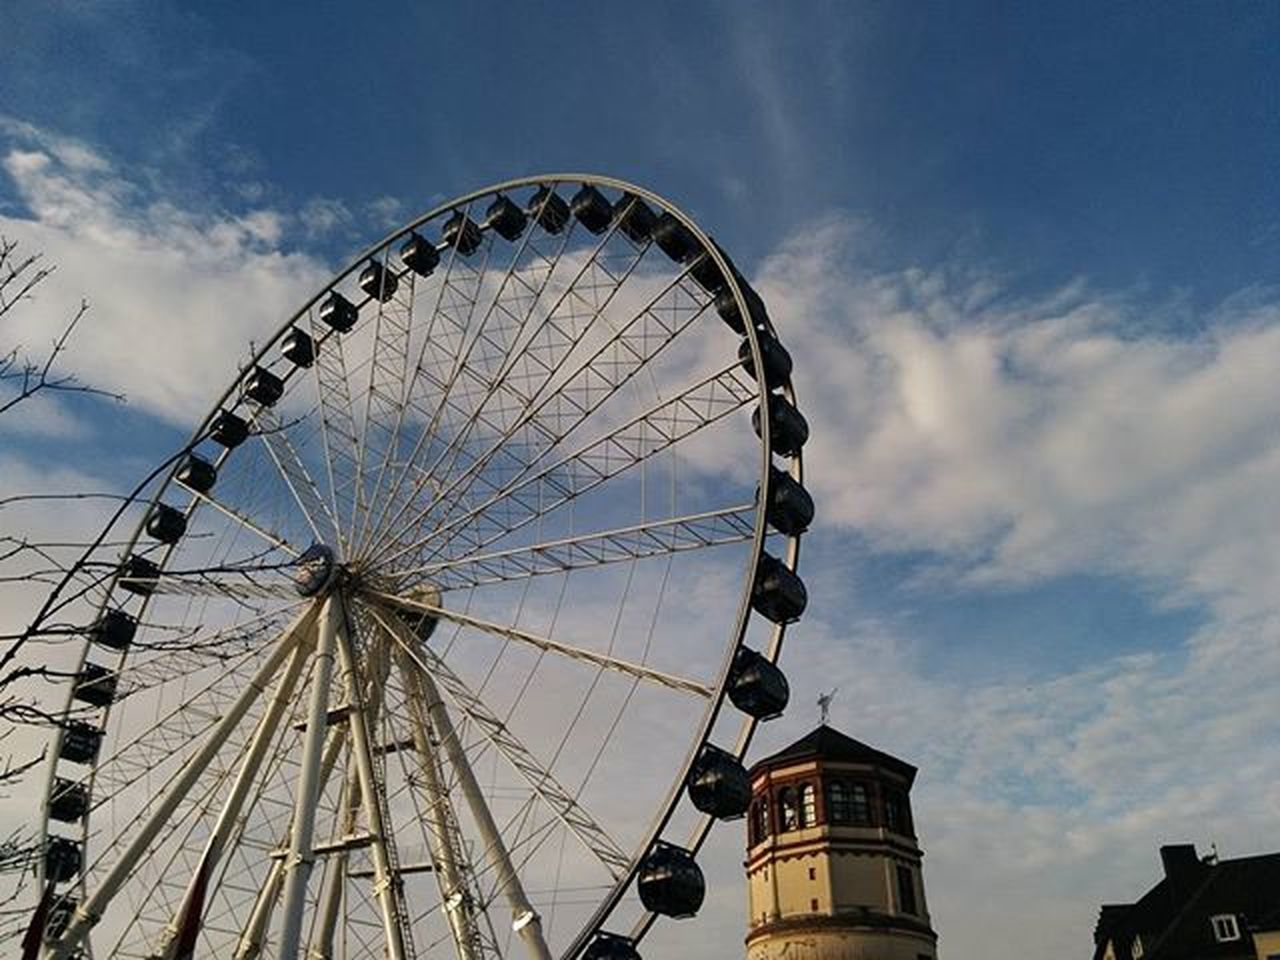 🎡🎈🎅 Düsseldorf Germany Germany Photos Official EyeEm © Dusseldorf Christmas Christmas Christmas Time Ferris Wheel Ferris Wheels Clouds Clouds And Sky Cloudy Day Tower